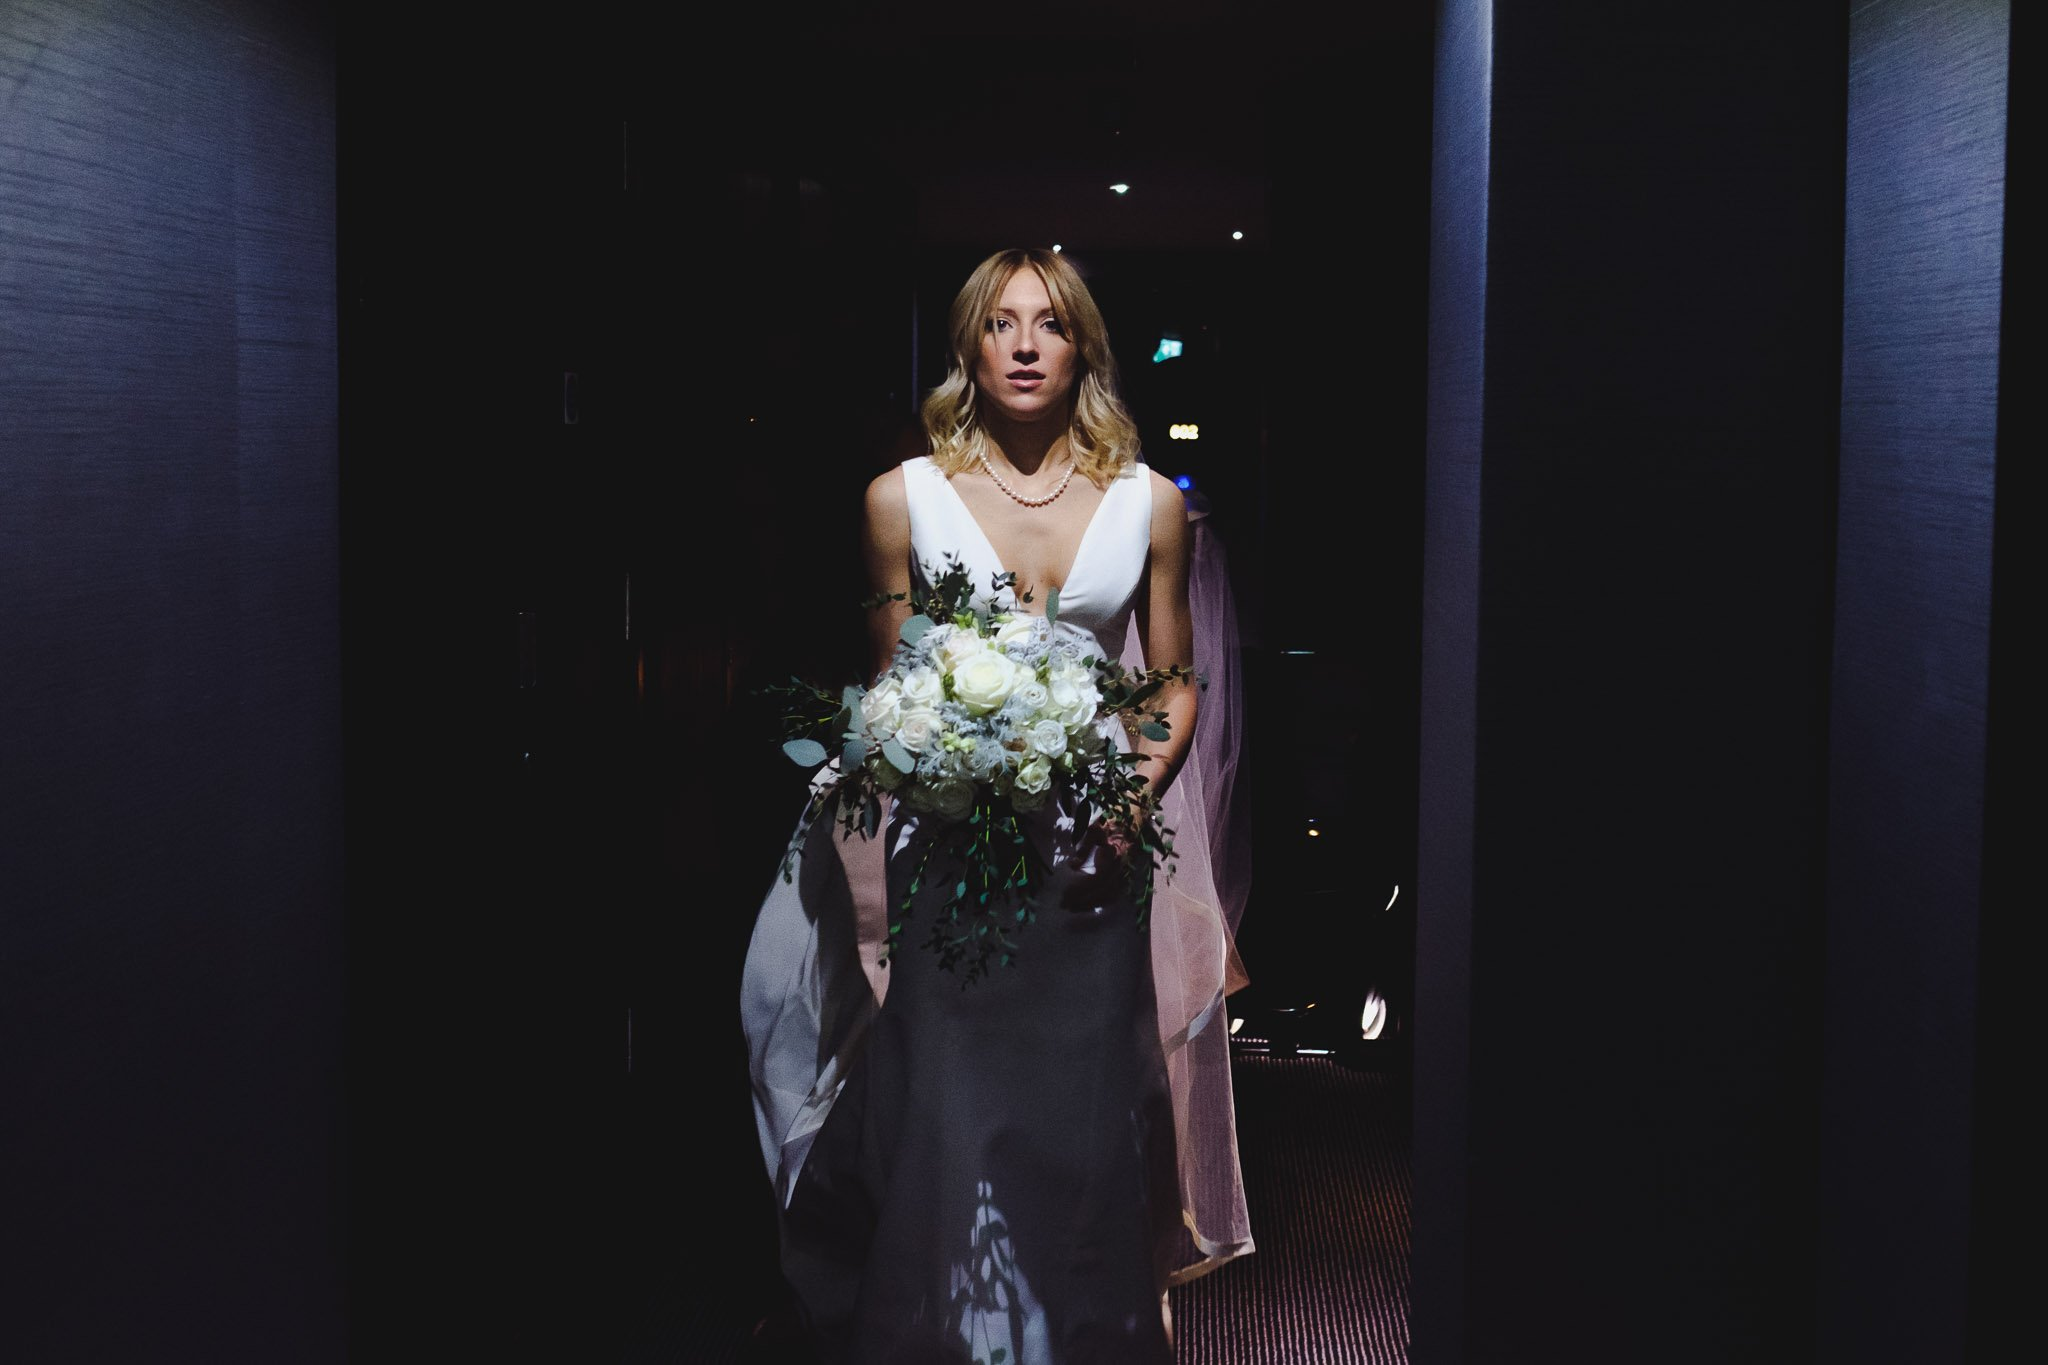 Bride walking with bouquet at The Montcalm Hotel Finsbury Square London